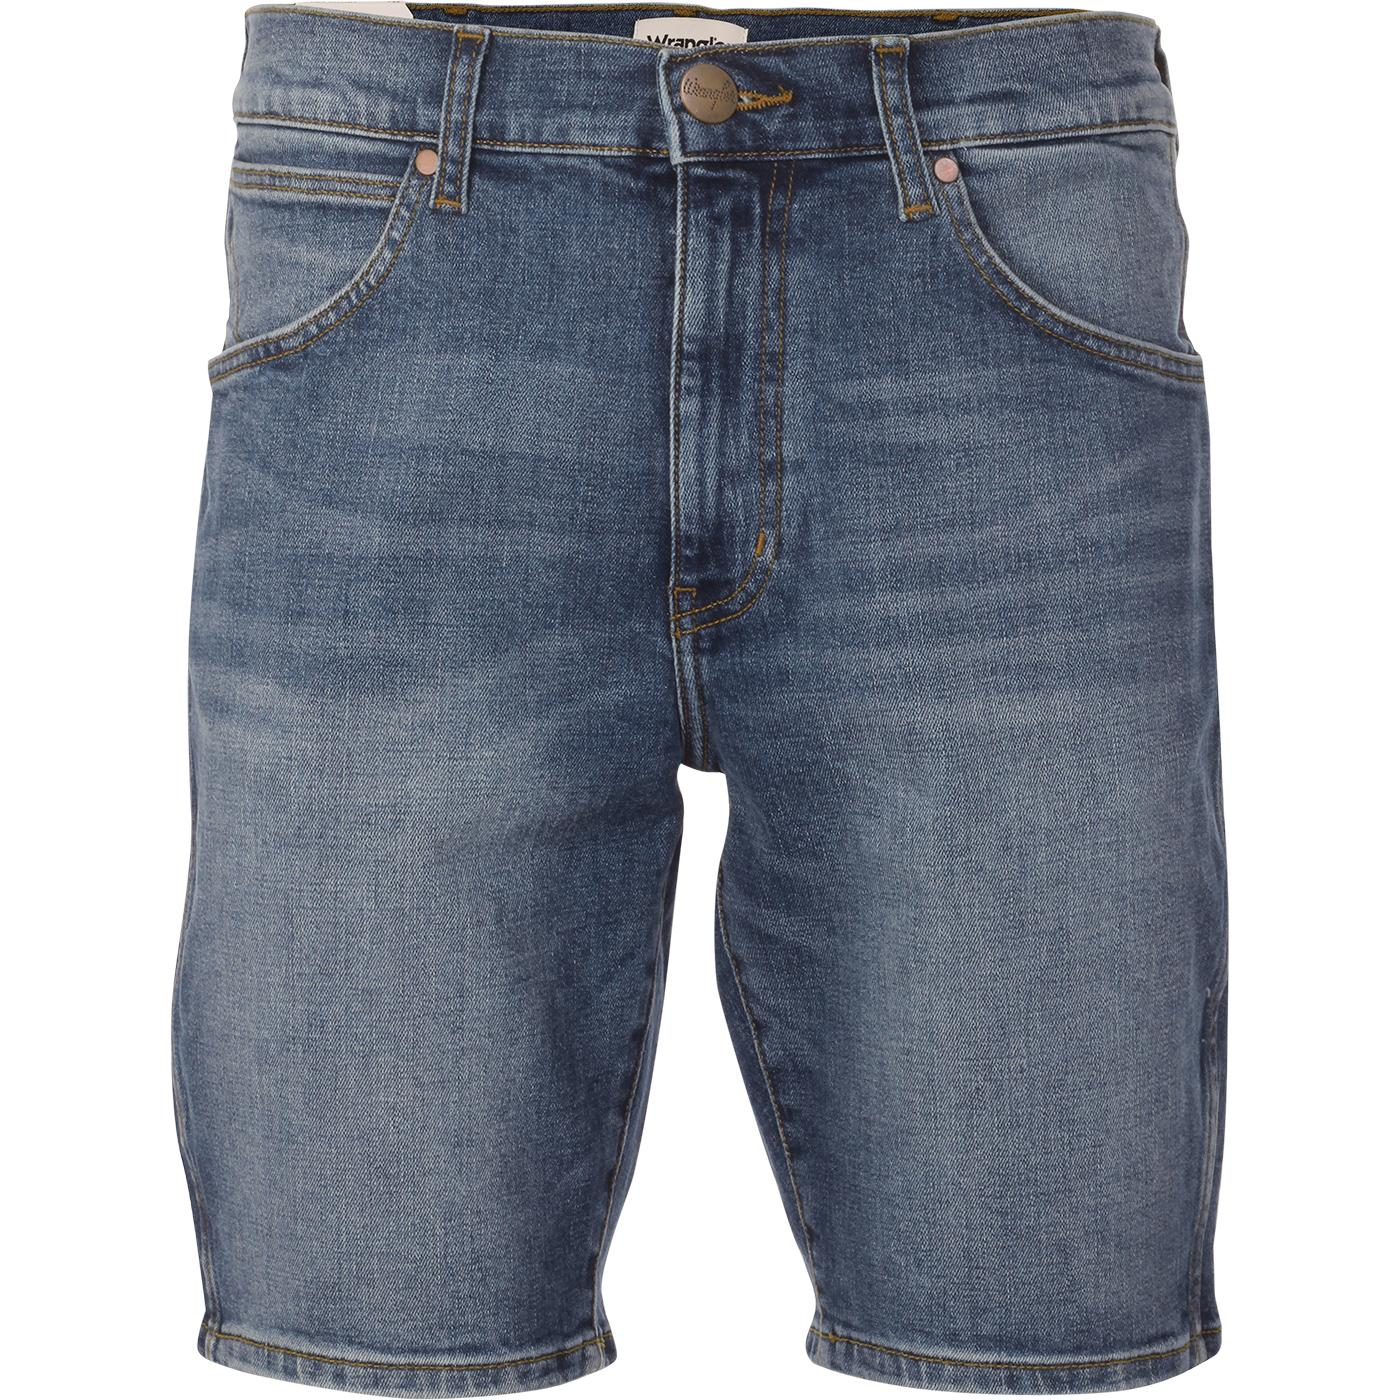 WRANGLER Men's Retro 5 Pocket Denim Shorts (LF)